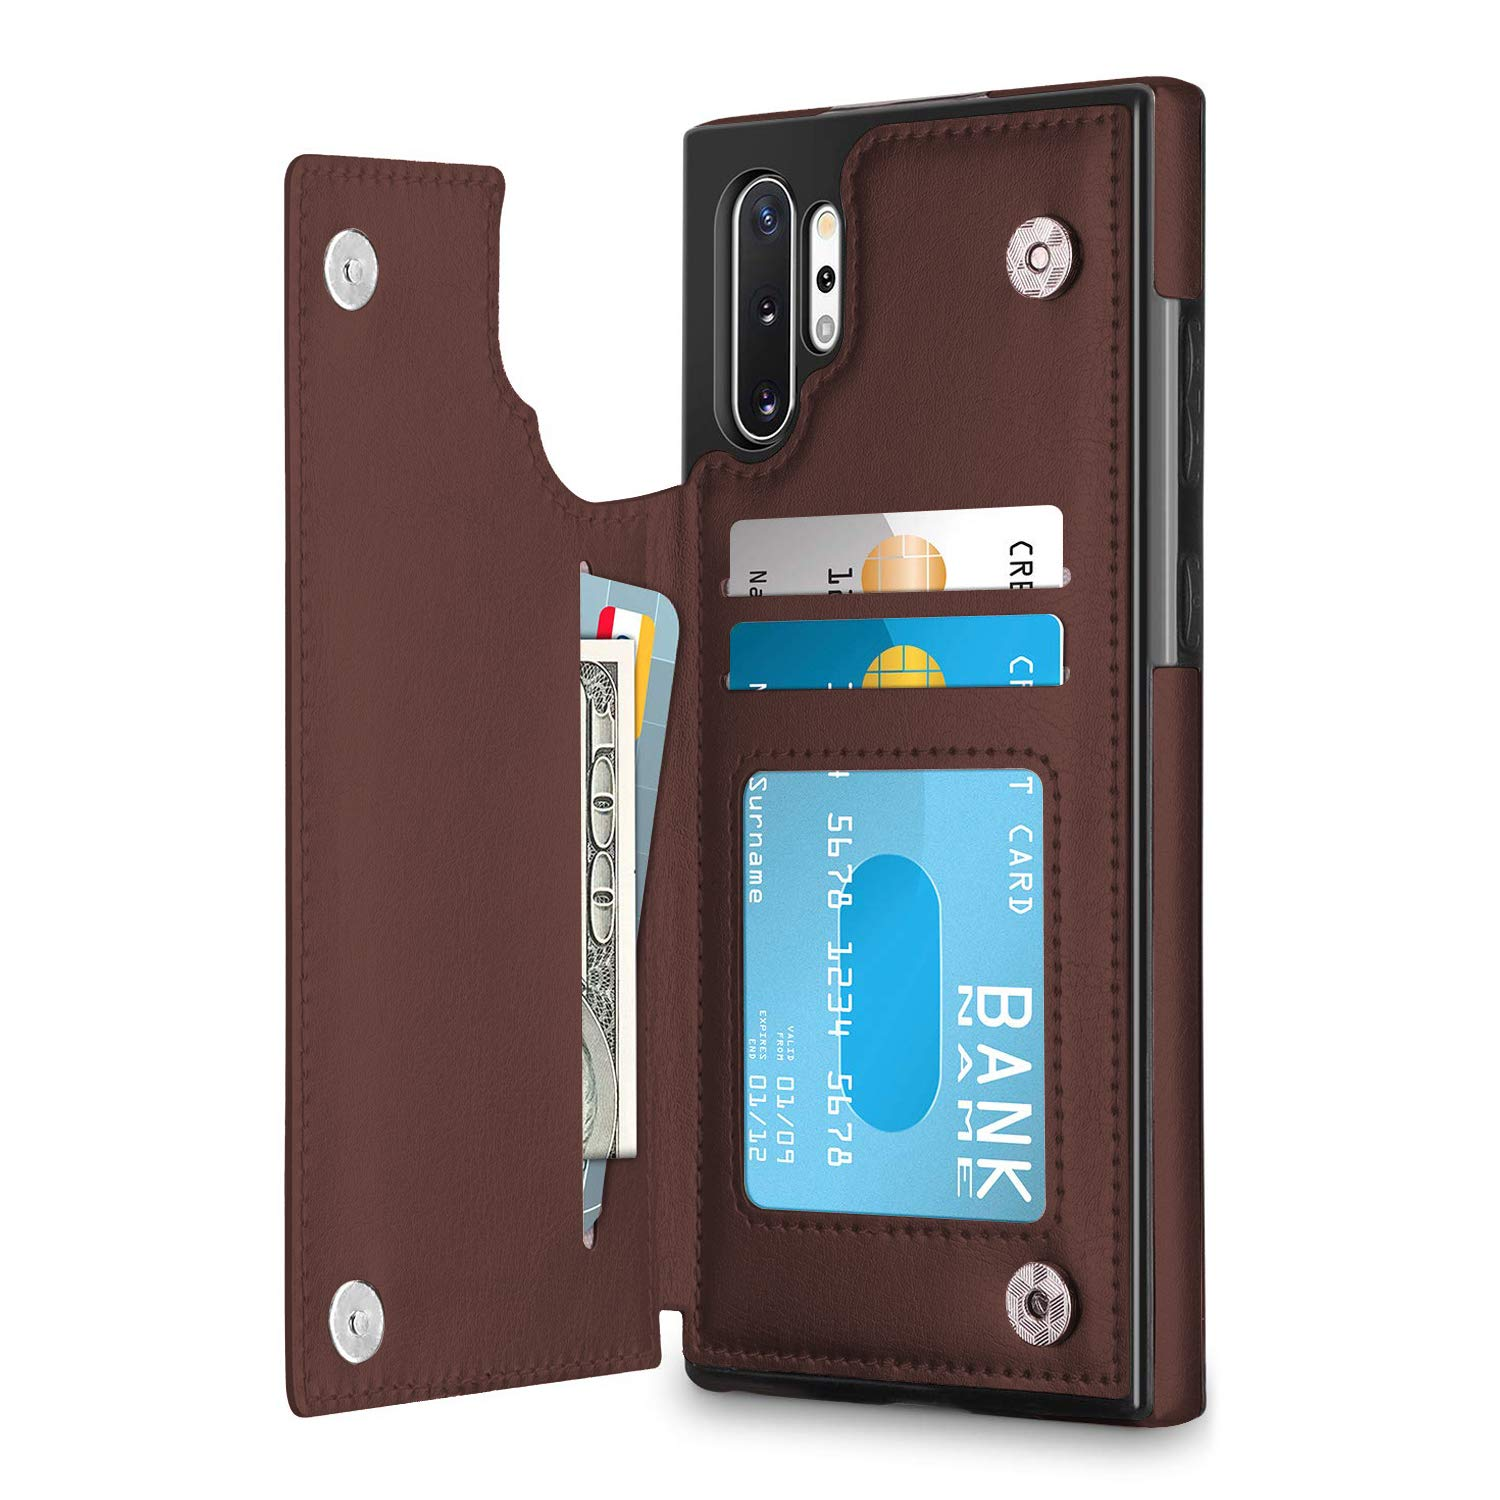 Oihxsetx Wallet Case for Galaxy Note 10 Plus with Credit Card Holder, Premium PU Leather Card Slots, Protective Flip Folio Cover Compatible with Galaxy Note 10 Plus - Brown by Oihxsetx